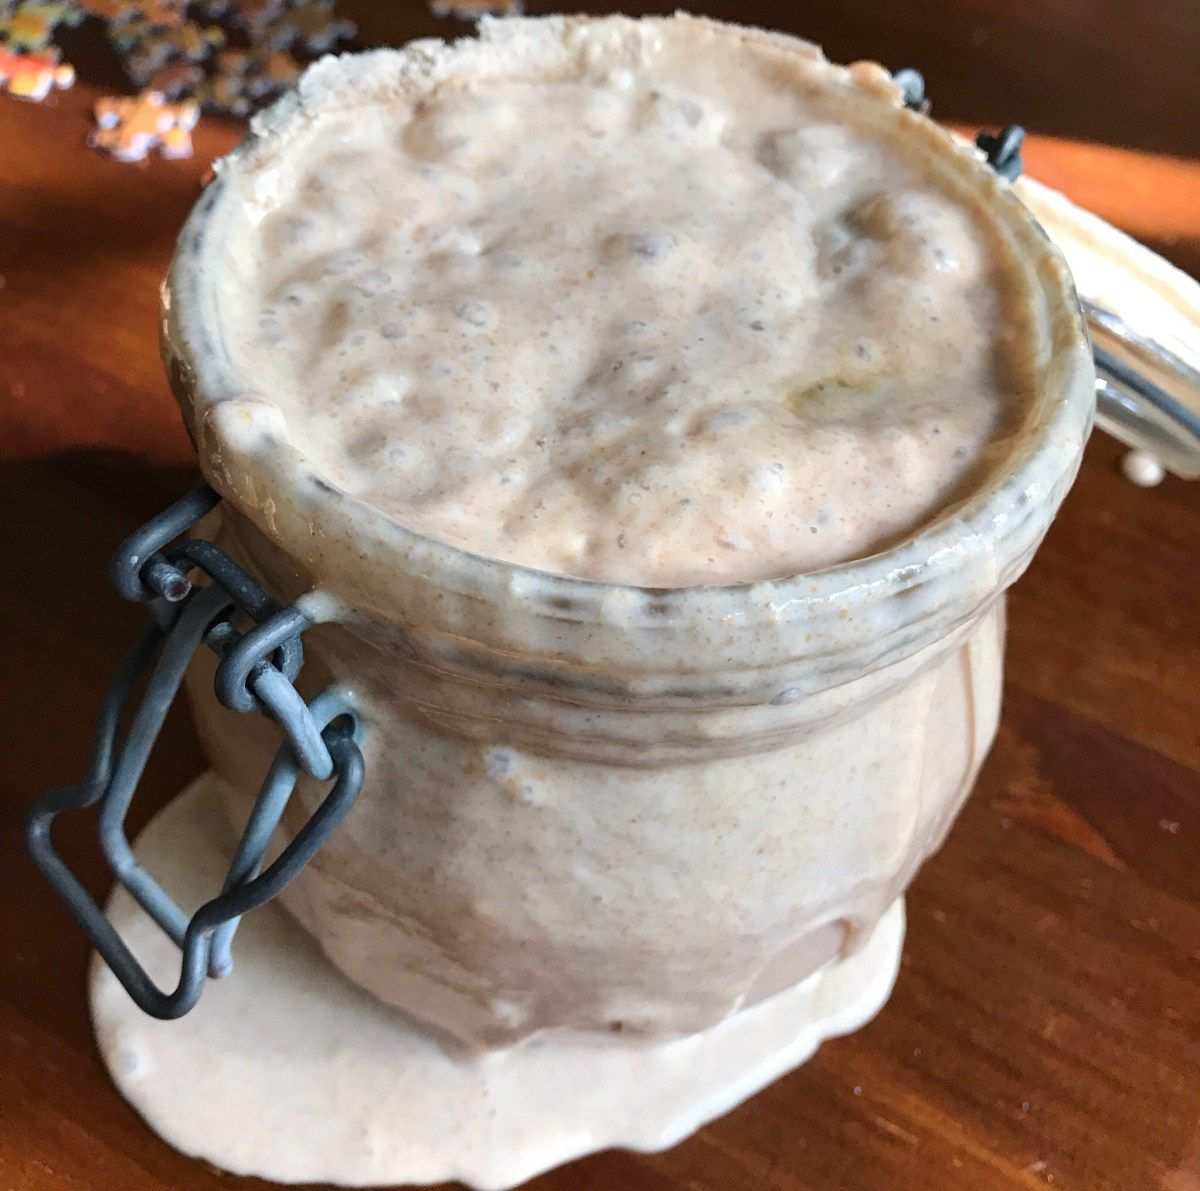 How to Prevent Your Sourdough Starter from Taking over